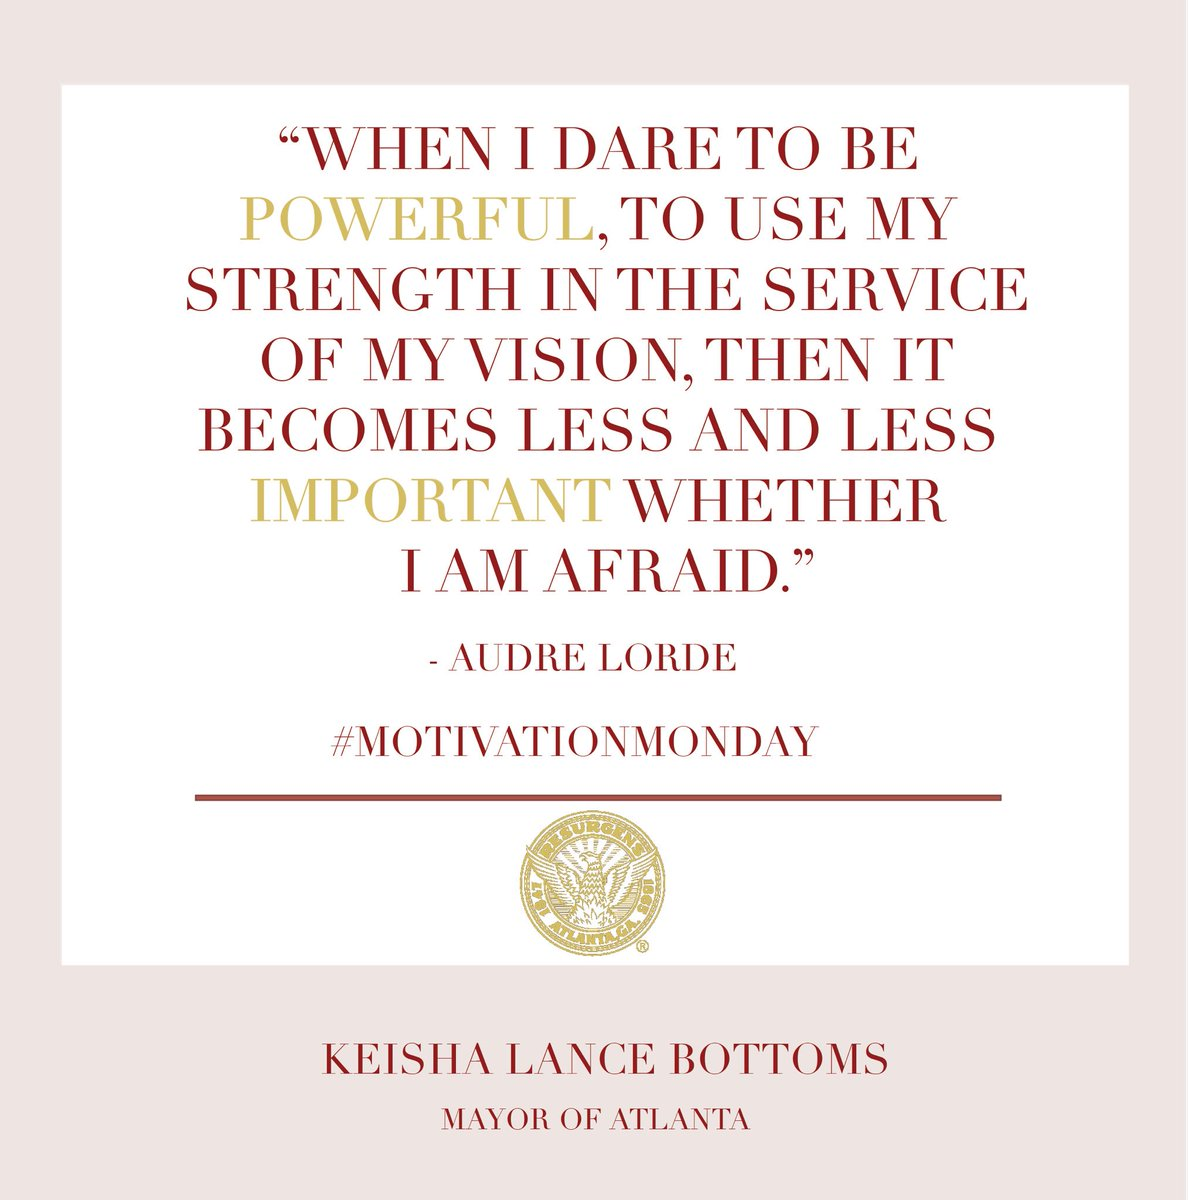 Keisha Lance Bottoms On Twitter Todays Motivation Is A Quote From